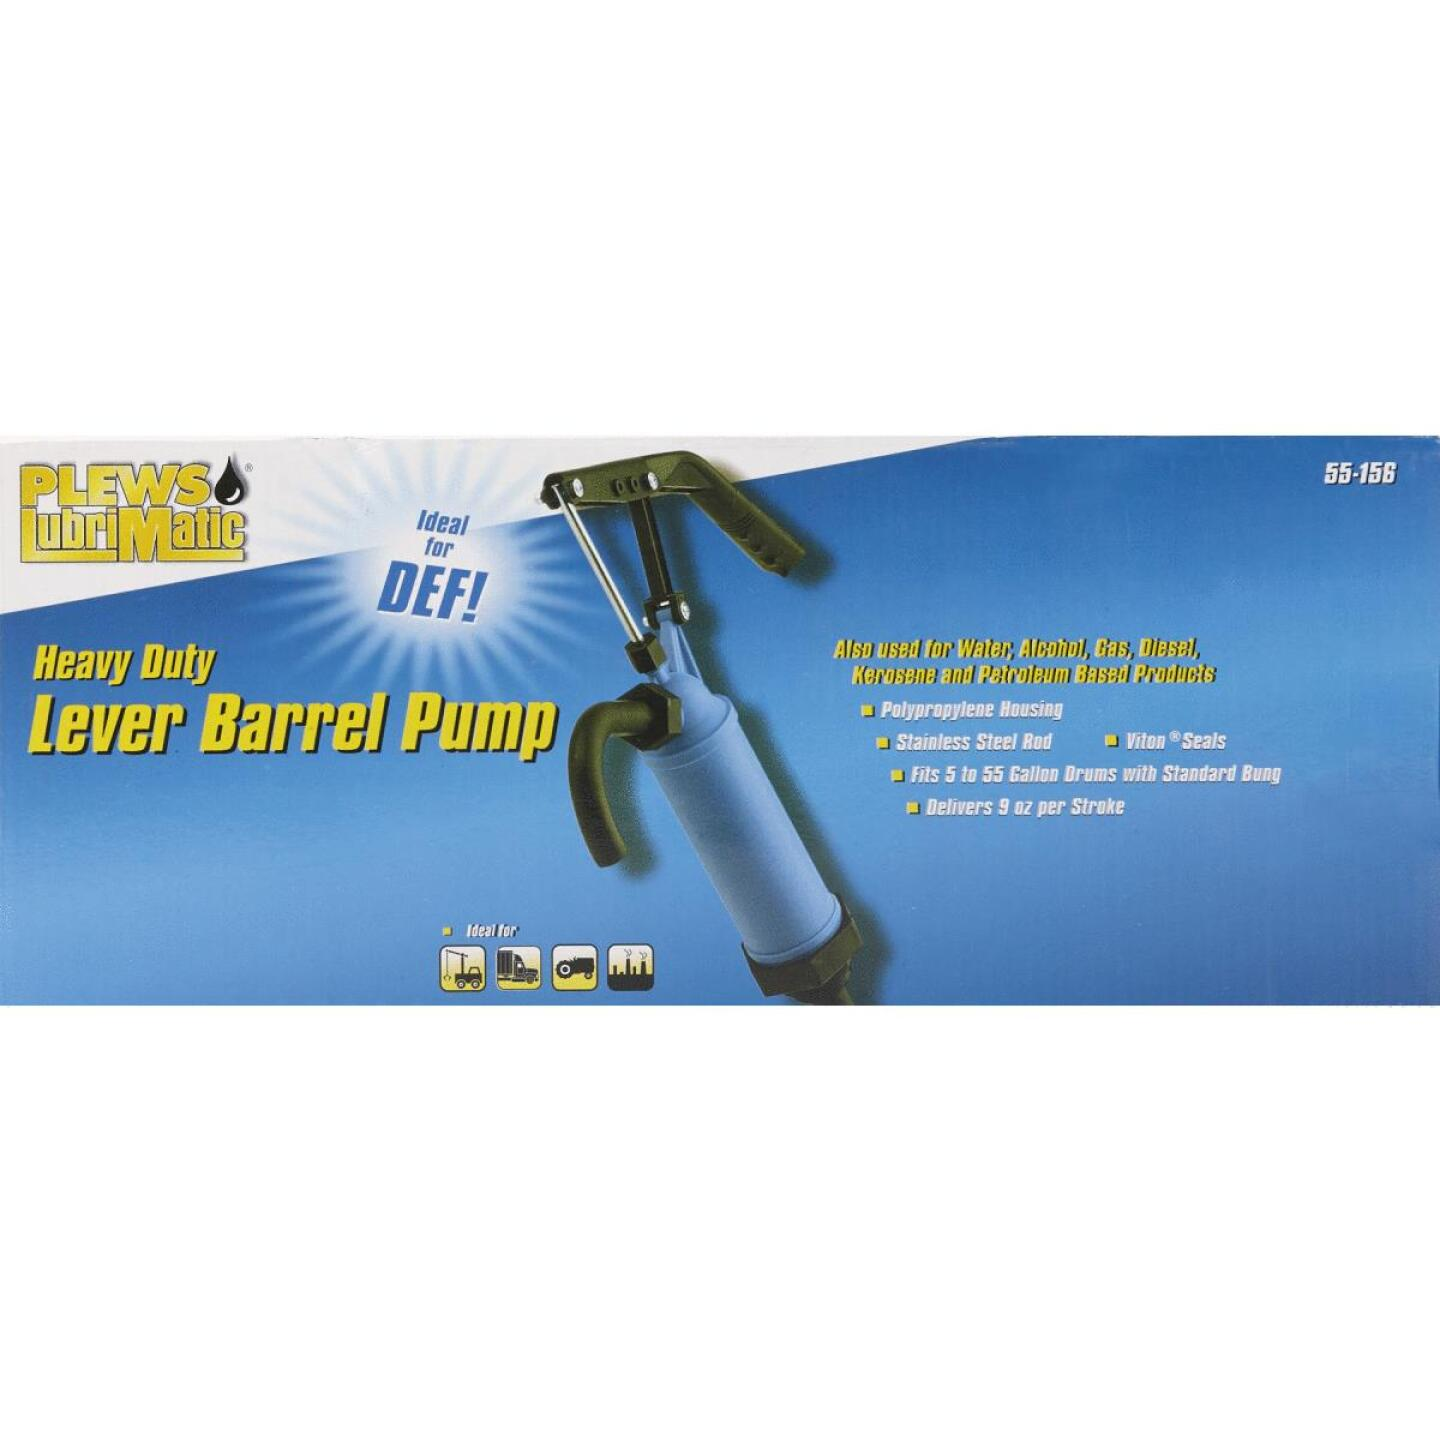 Plews LubriMatic DEF Lever Pump Image 2